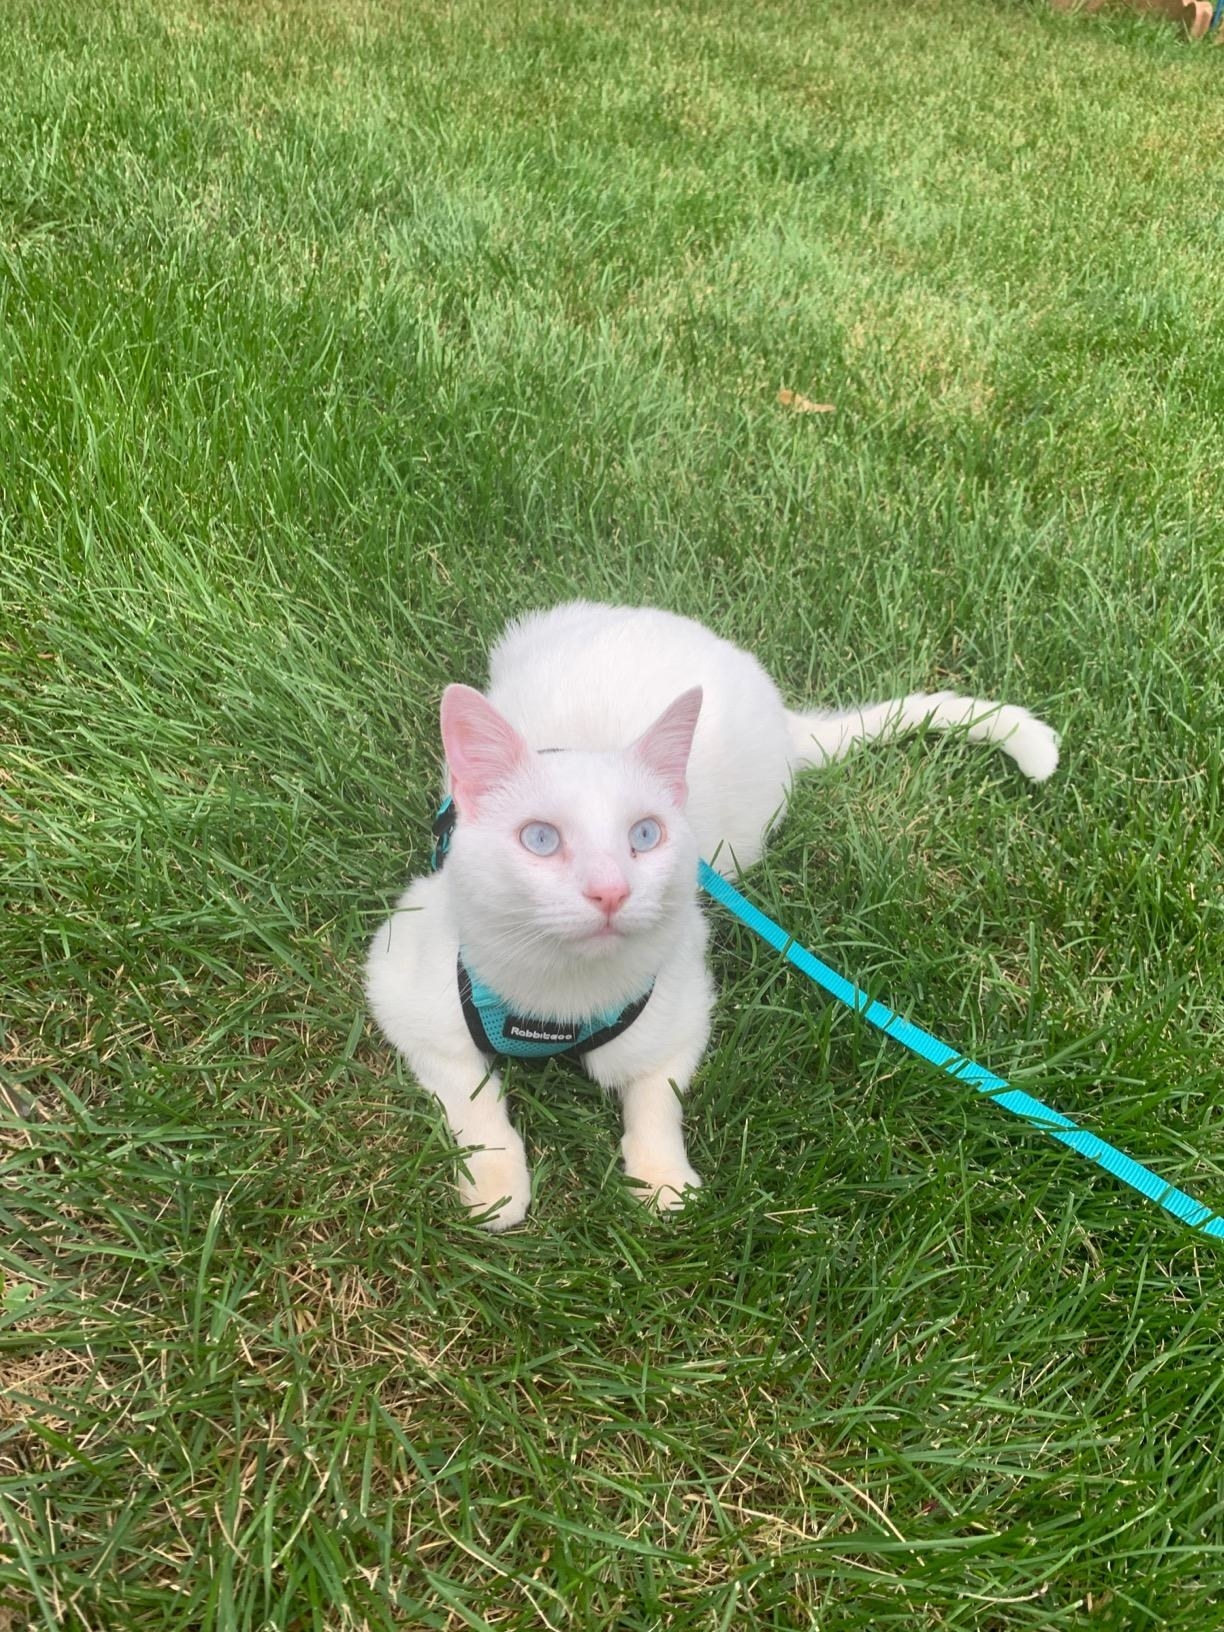 A cat wearing the harness and leash